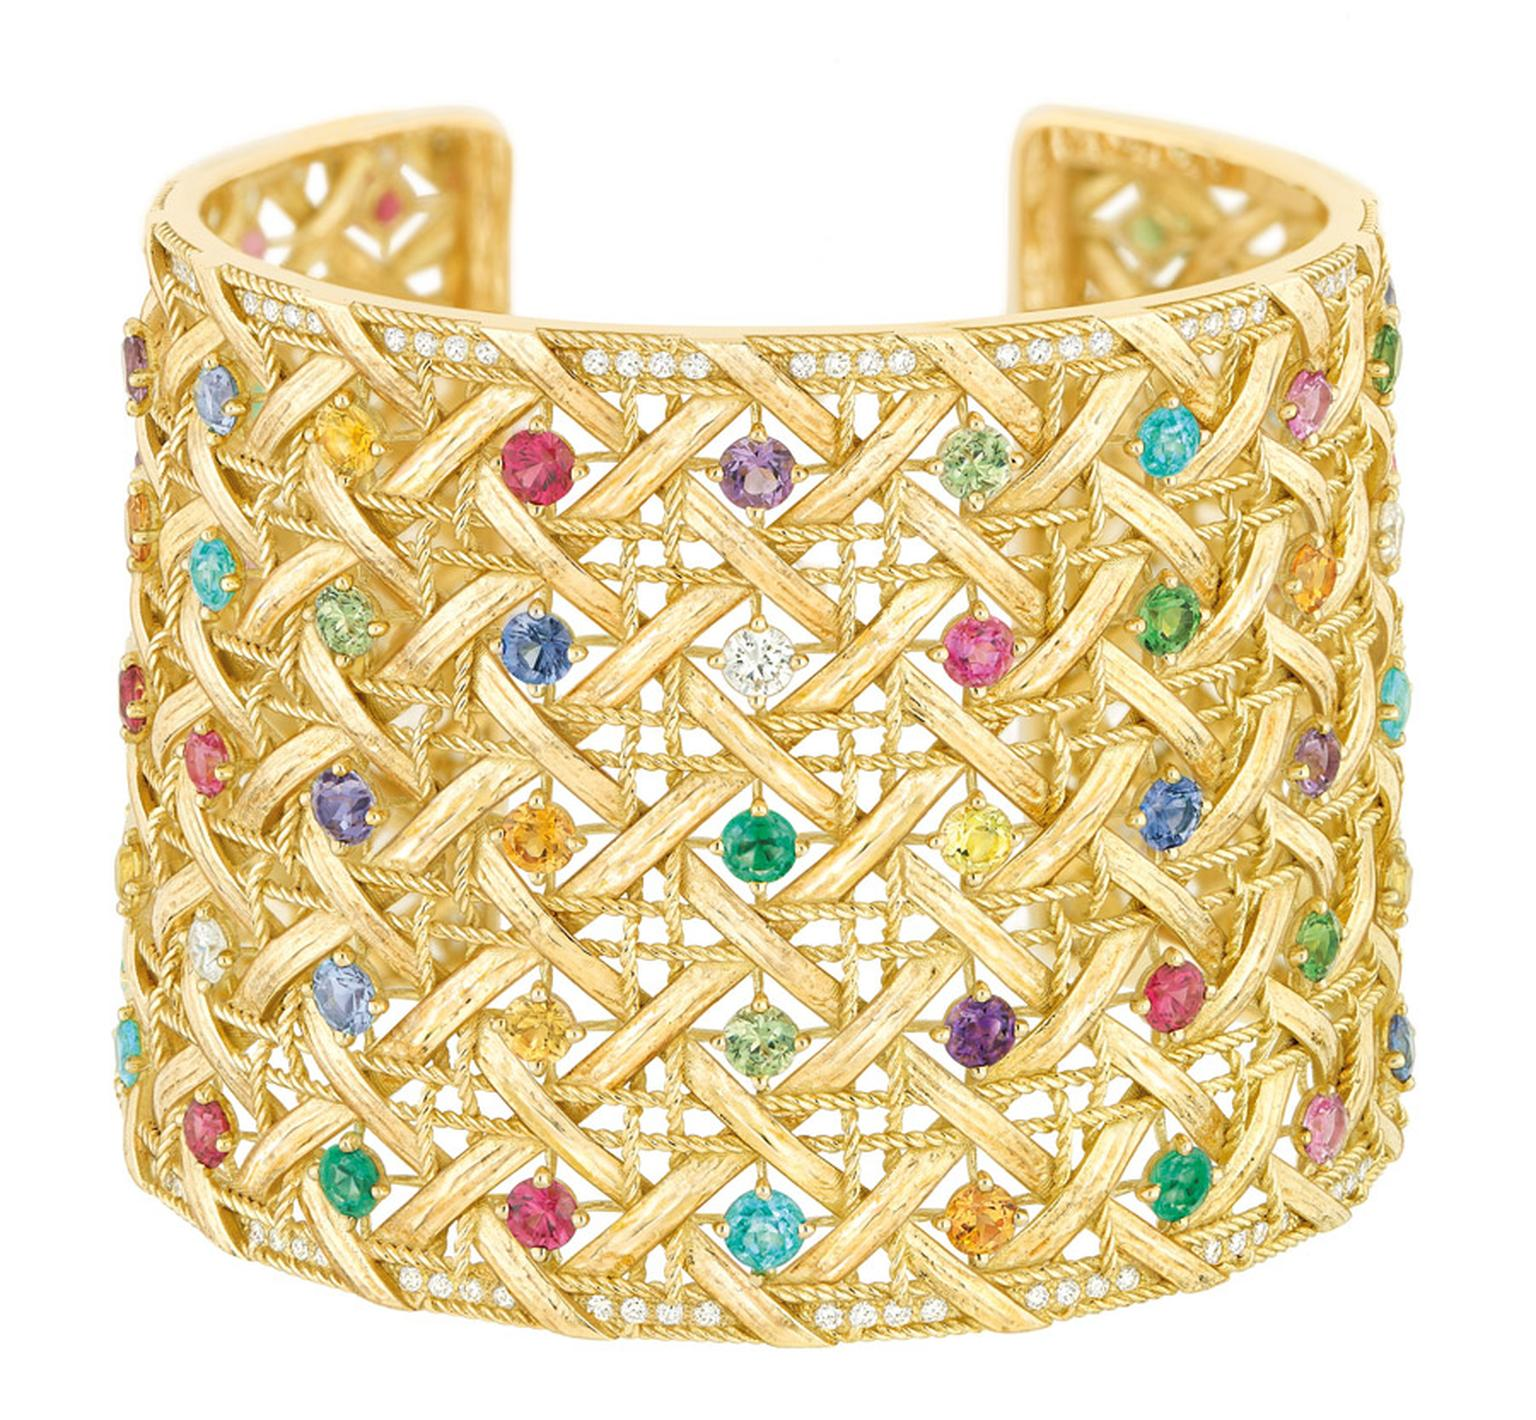 My-Dior-Cuff-Yellow-gold-and-coloured-stones.jpg